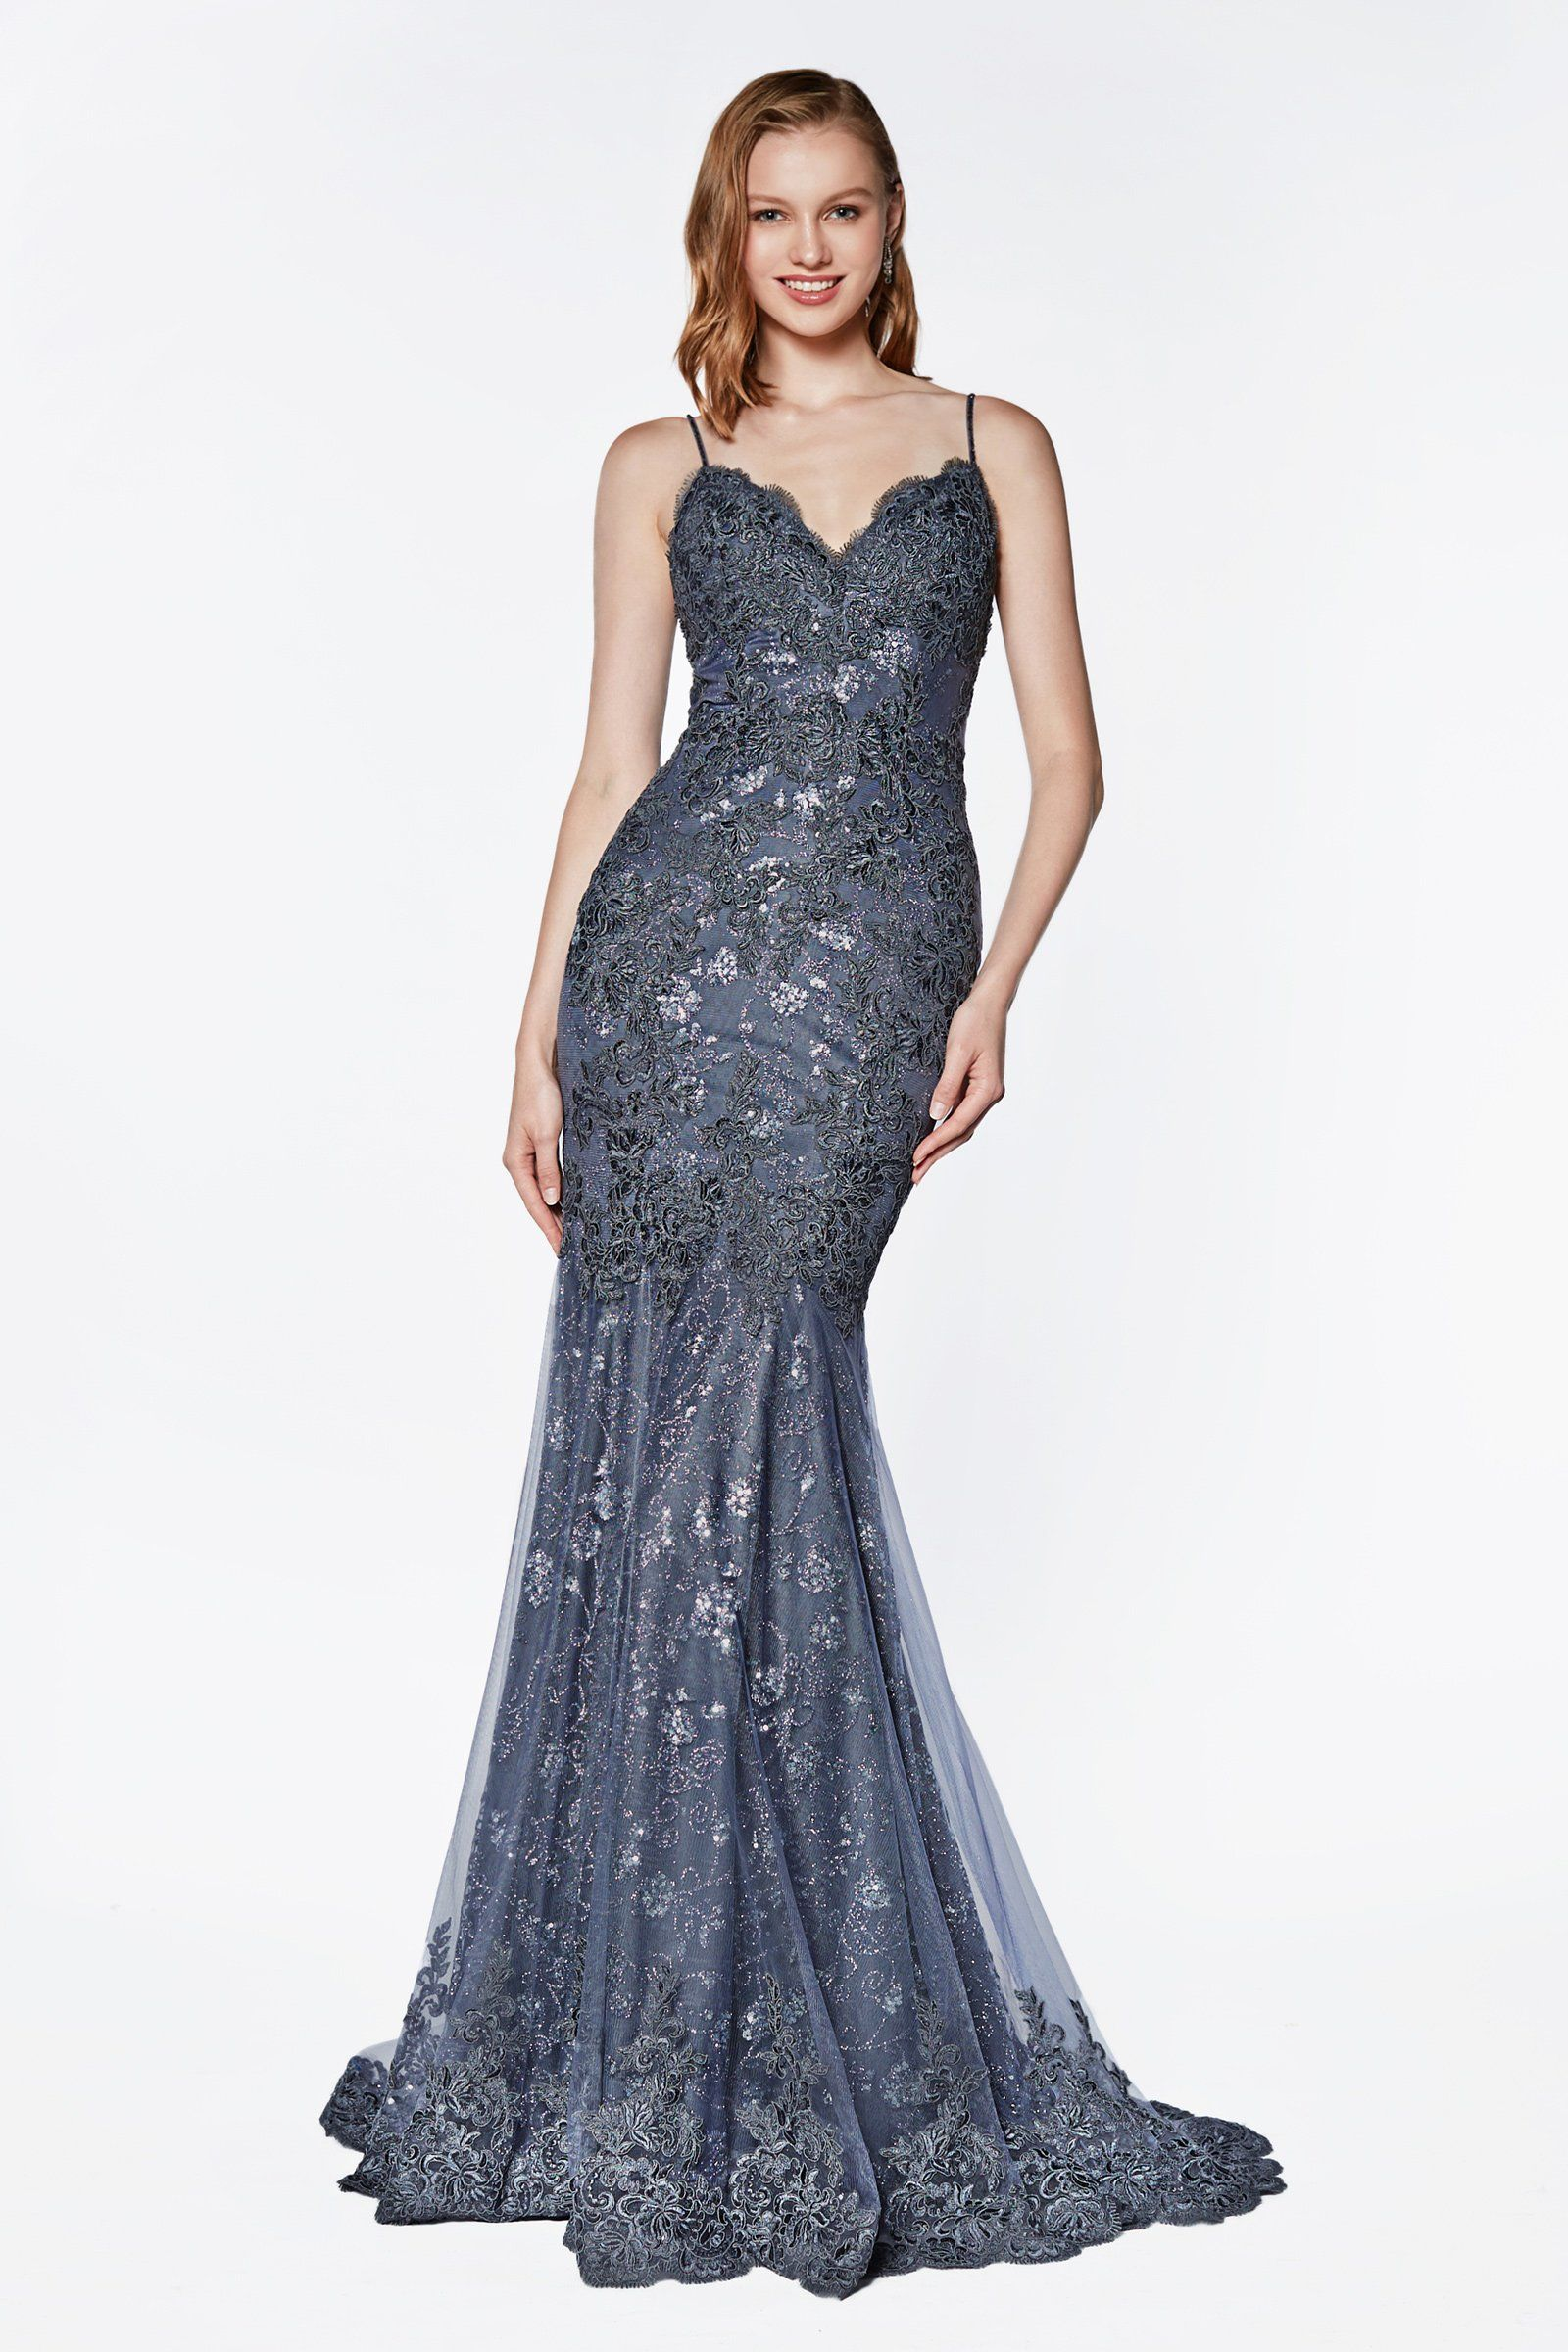 834007d2671 Smoky Blue Lace Applique Mermaid Dress by Cinderella Divine KC887 Fitted Prom  Dresses